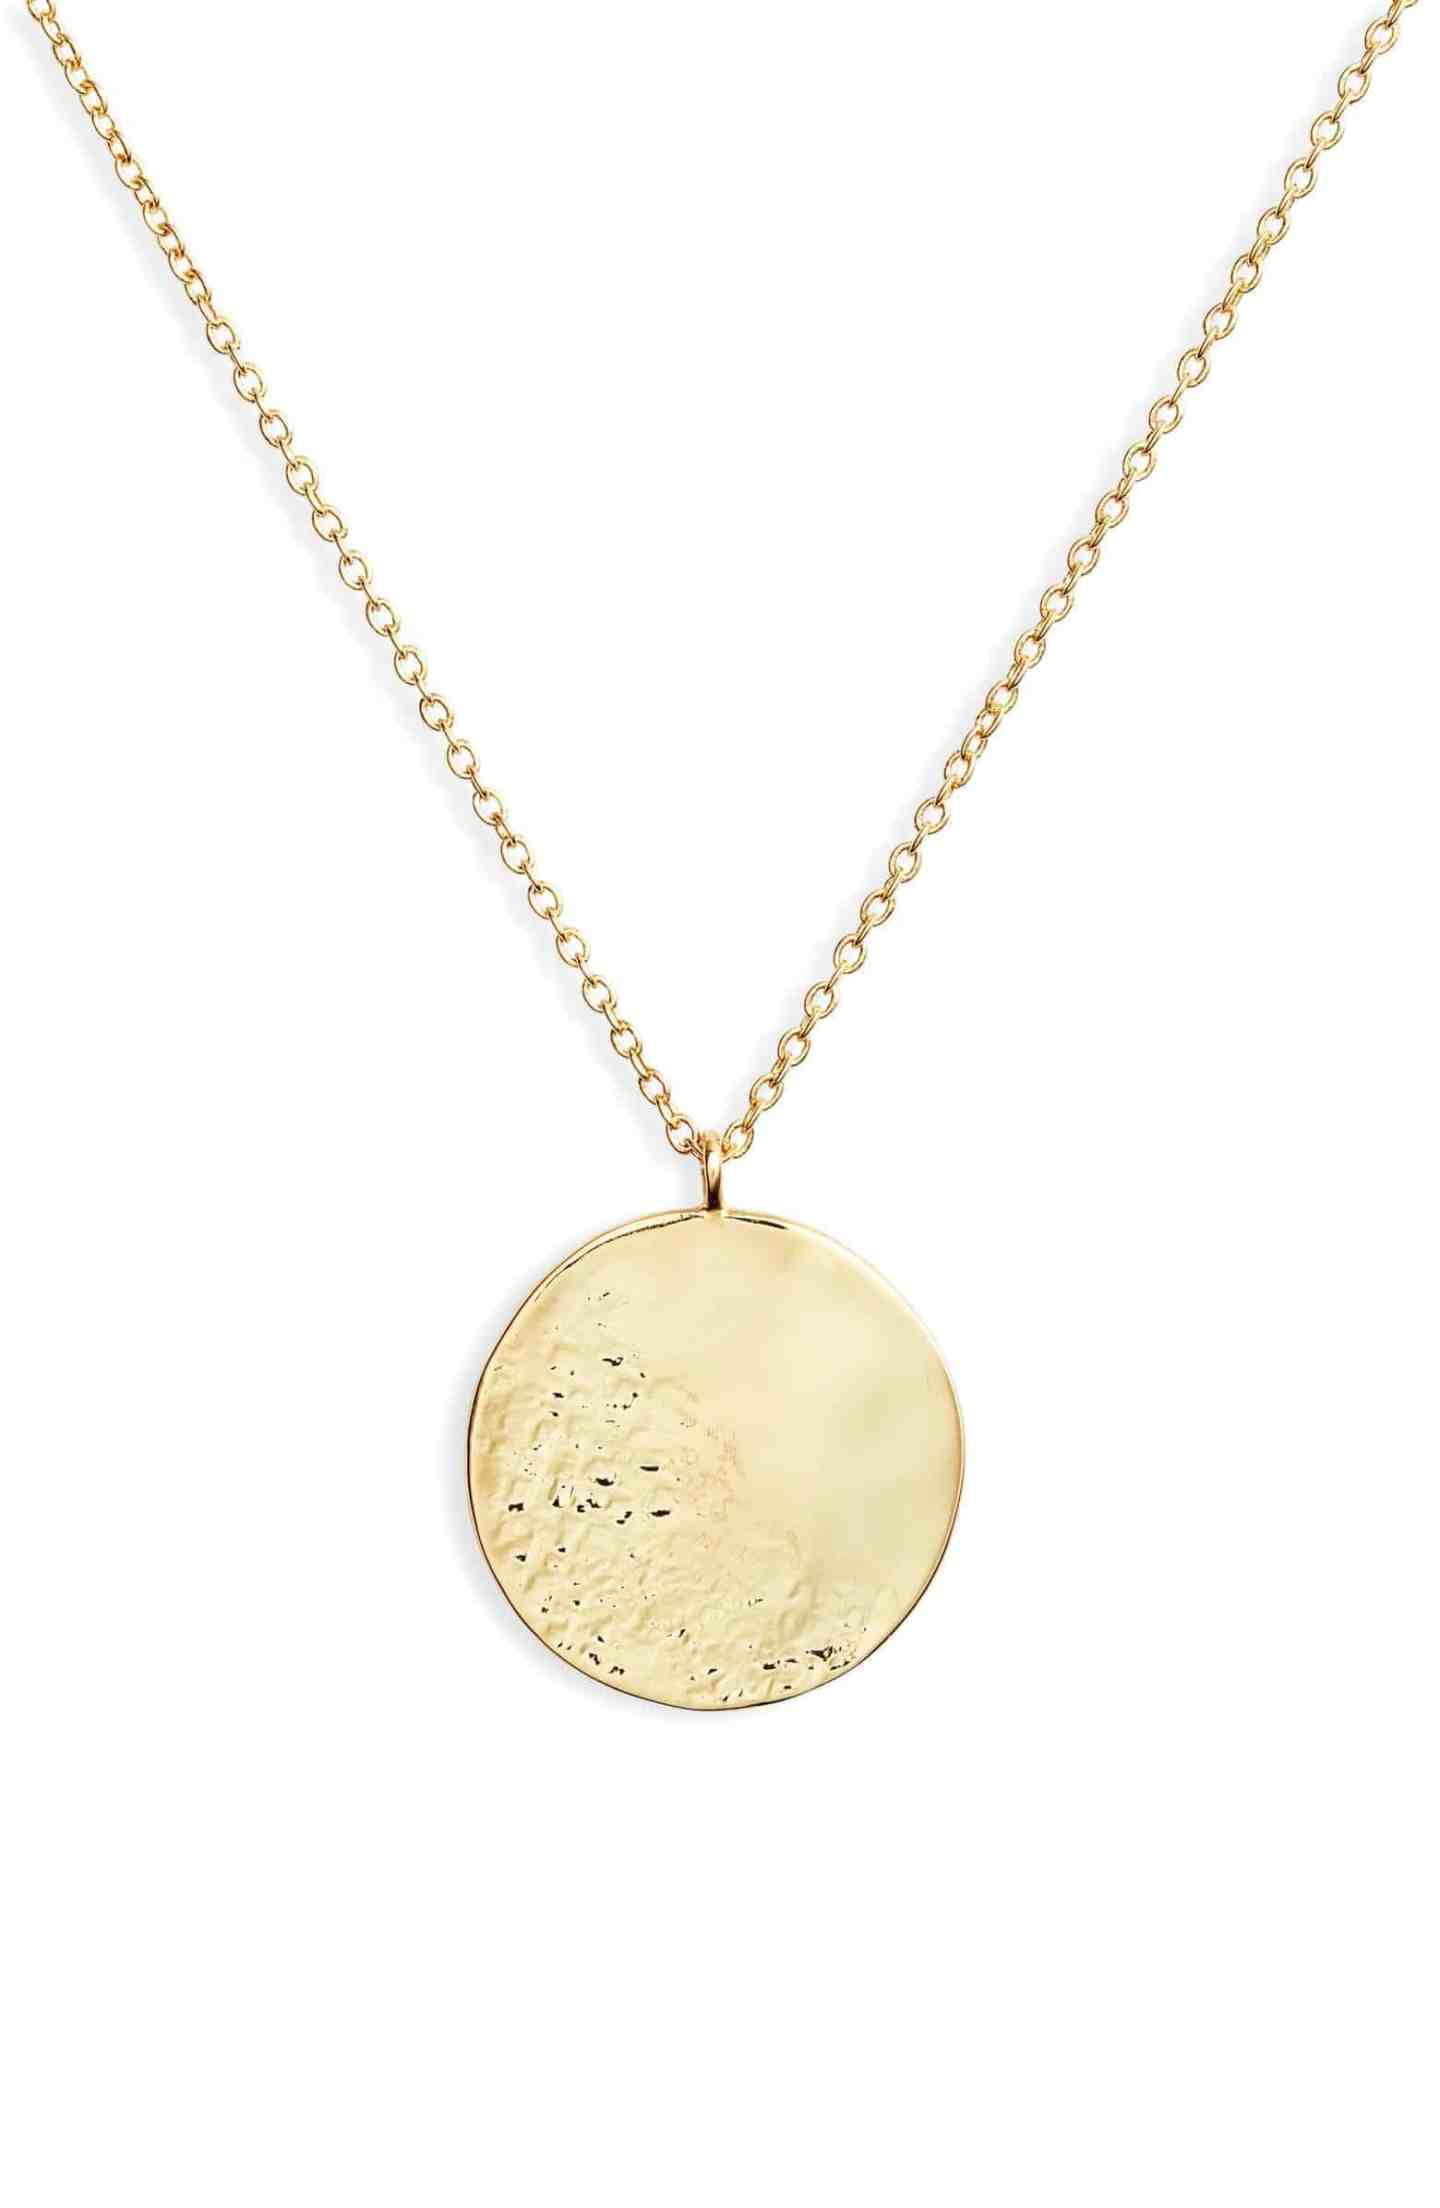 Gorjana Hammered Coin Necklace